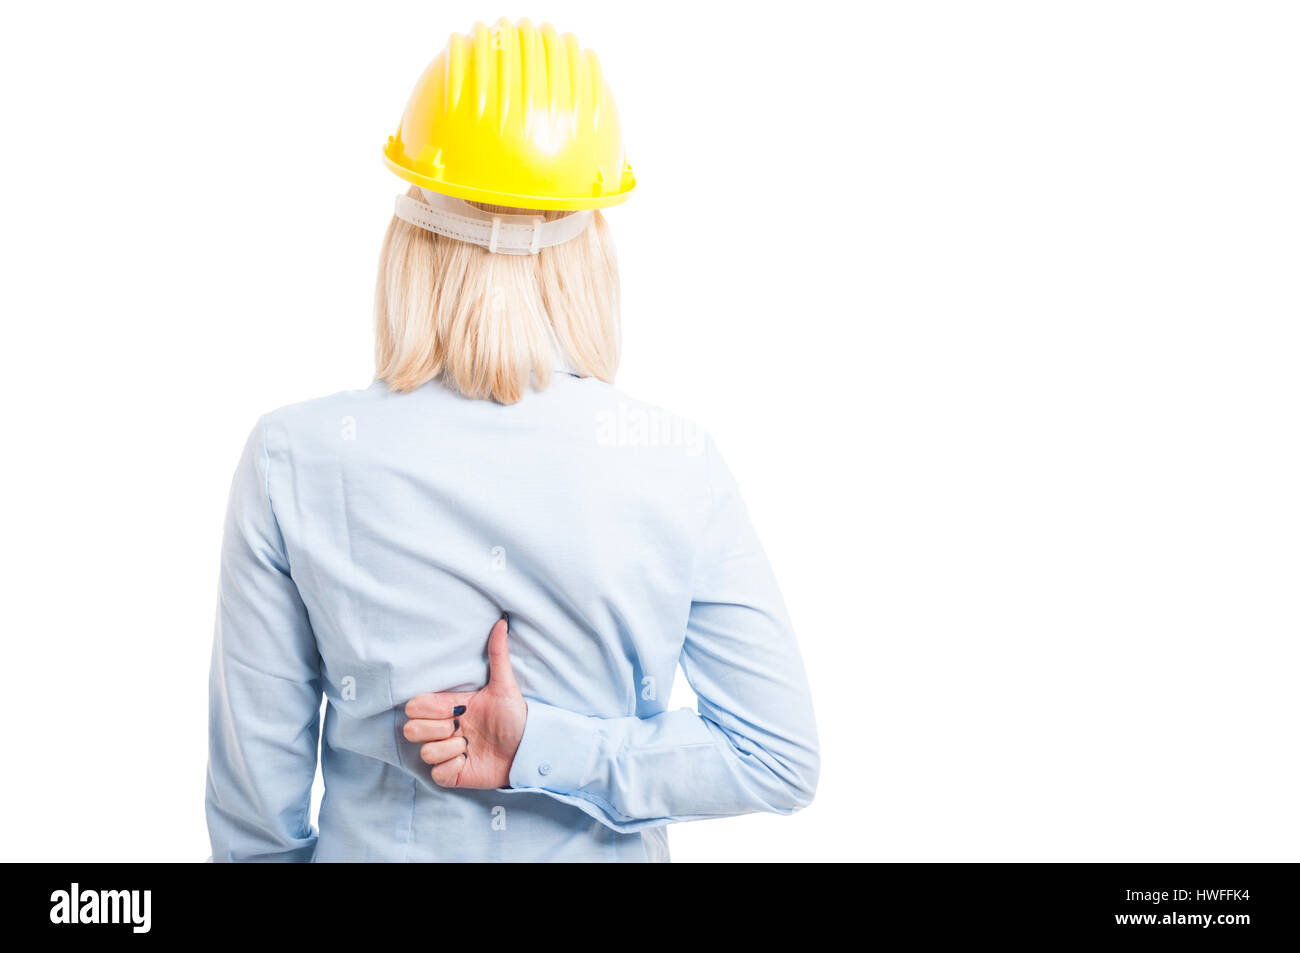 Helmet Like Stock Photos Images Alamy The Iron Bar In Uquot Shape With Dimensions As Shown Diagram Female Engineer Back Showing Gesture Wearing Yellow Isolated On White Background Copy Text